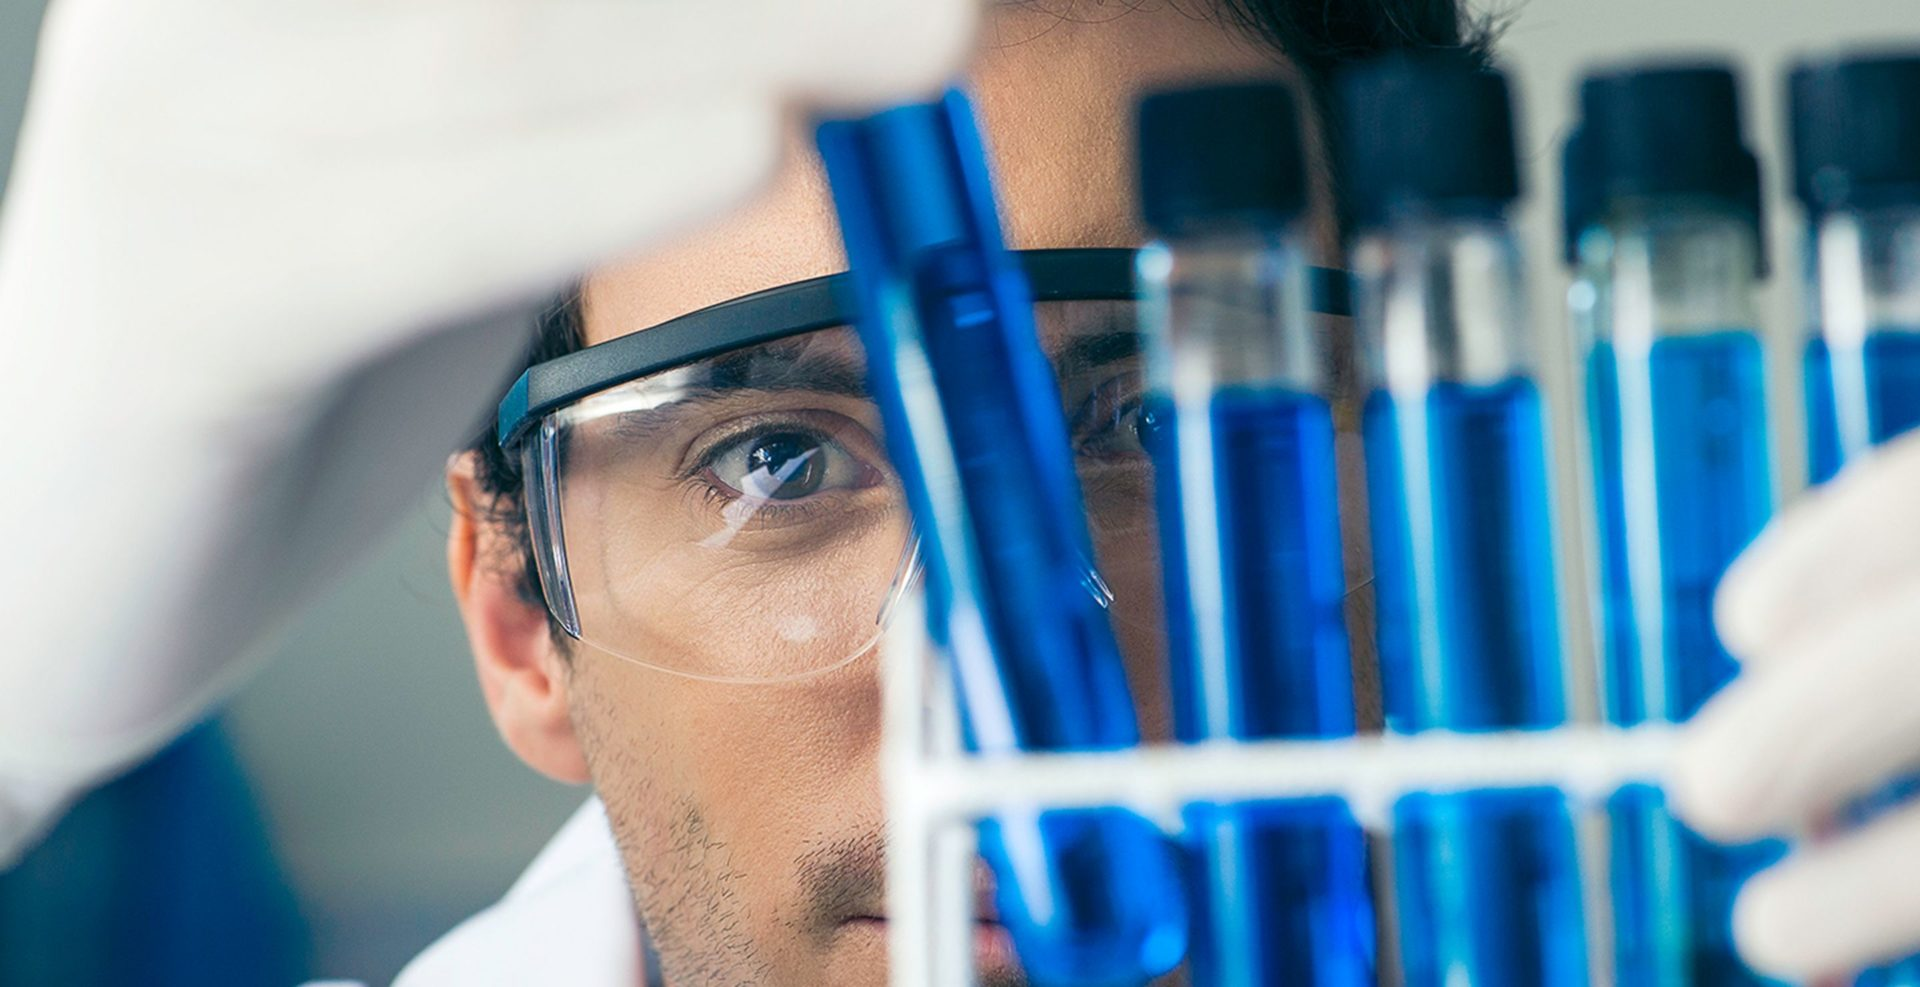 A man wearing goggles stares into a tray of test tubes.